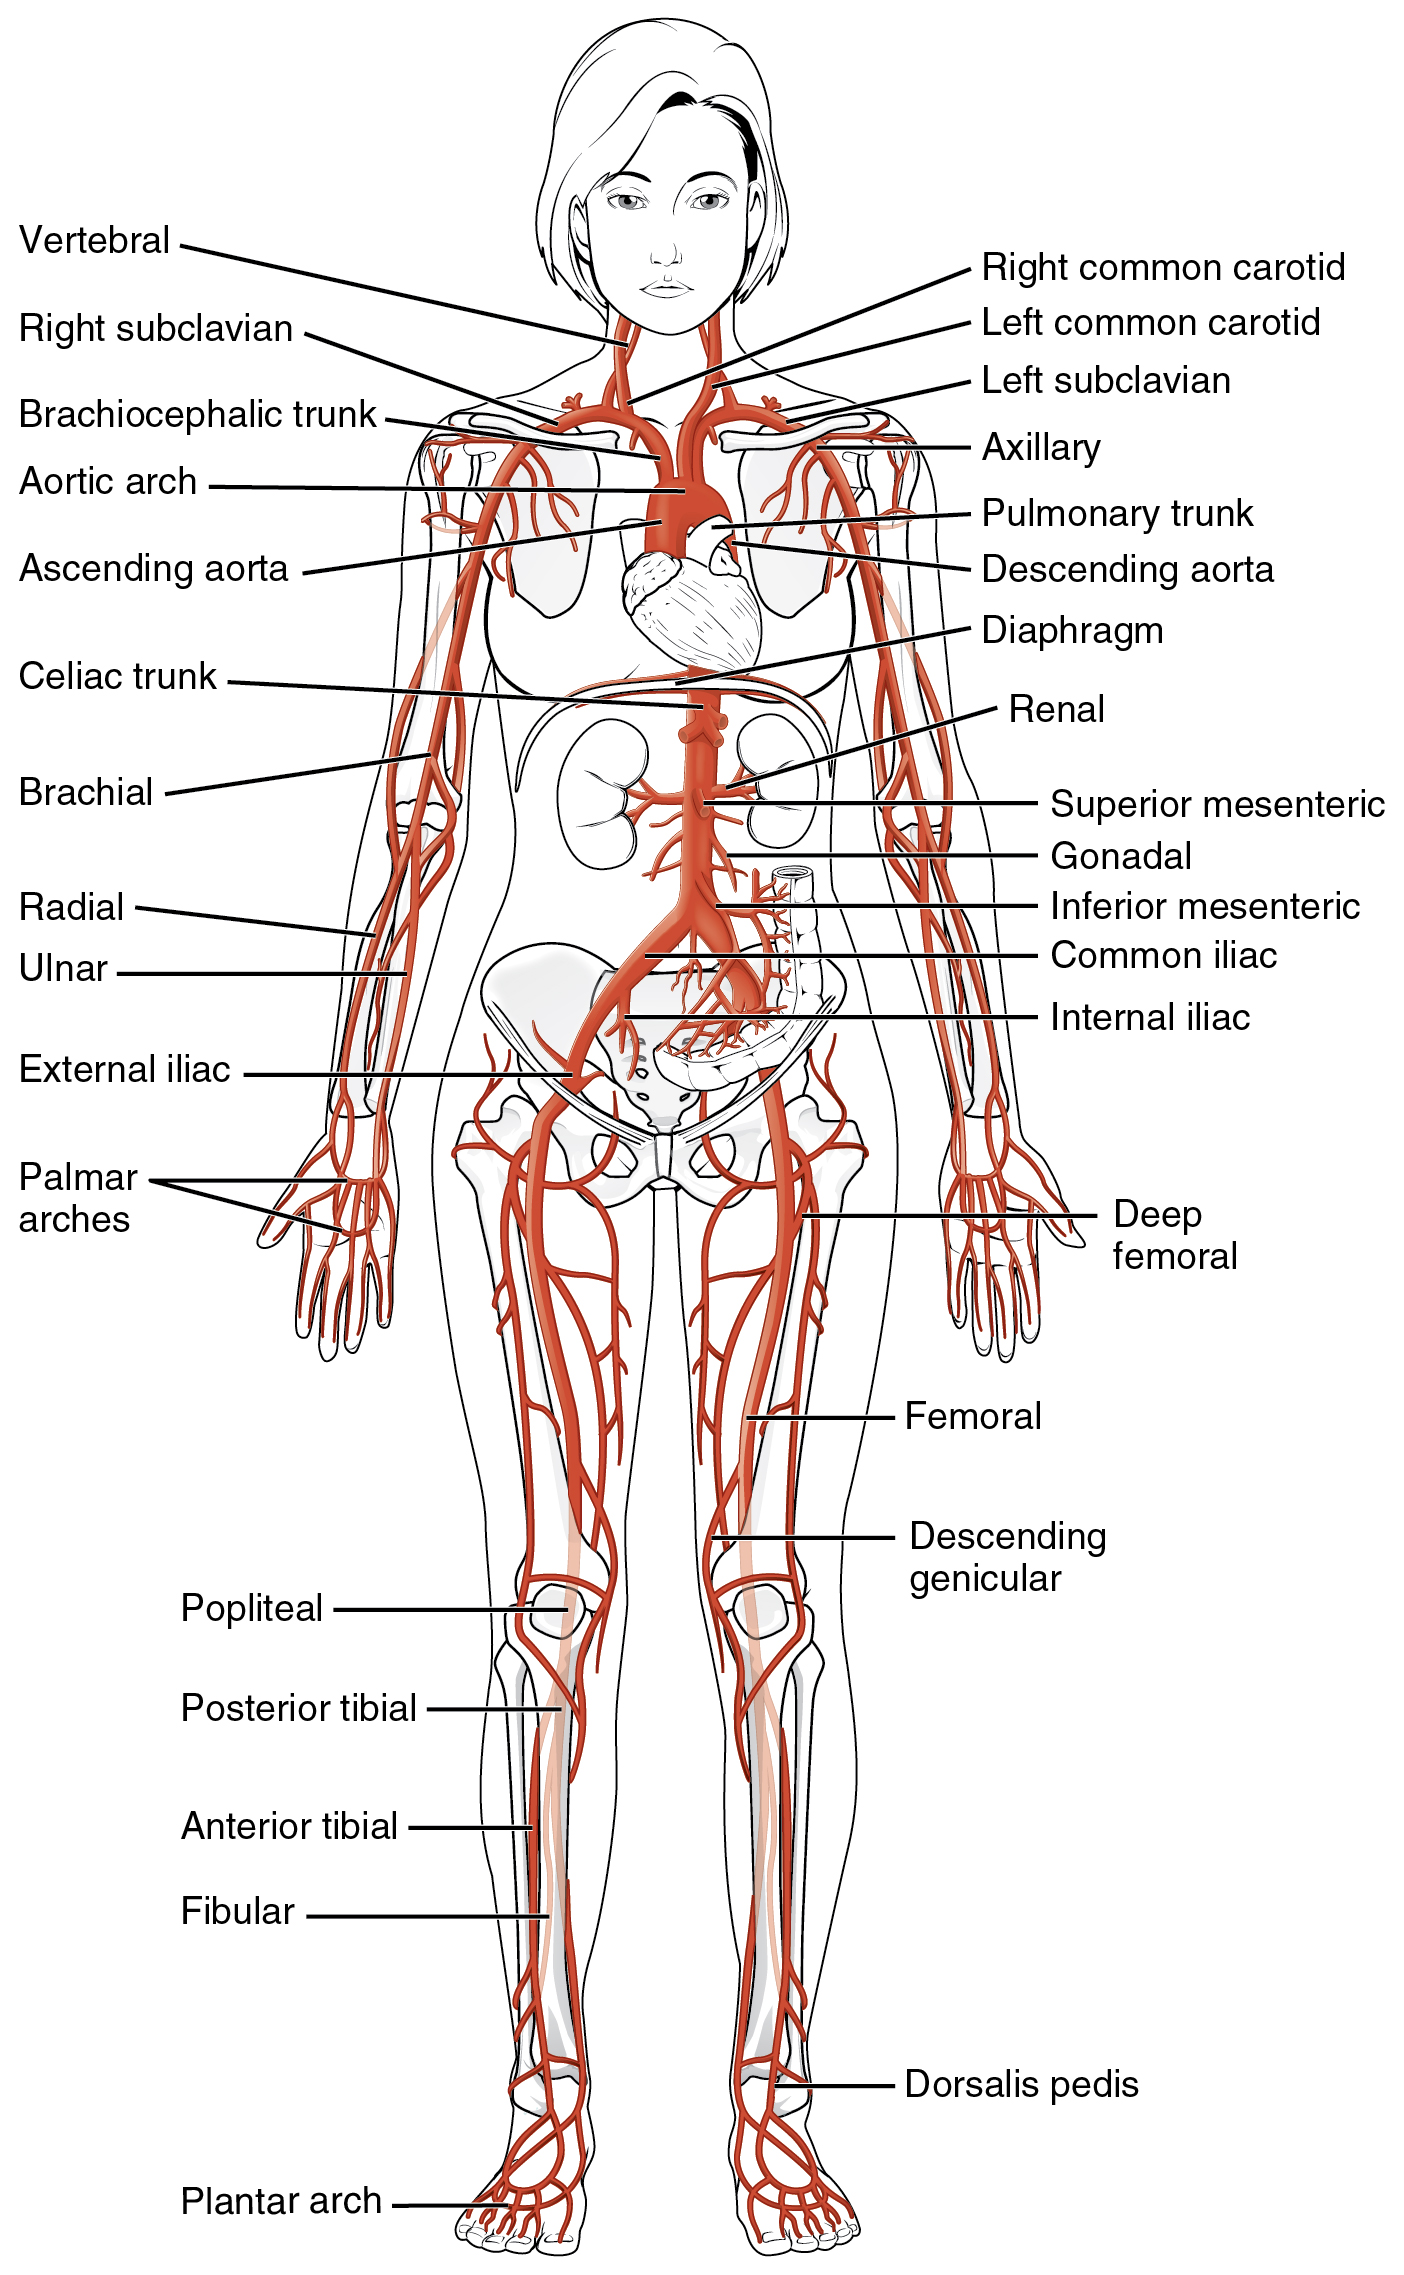 20.5 Circulatory pathways, The cardiovascular system: blood, By ...